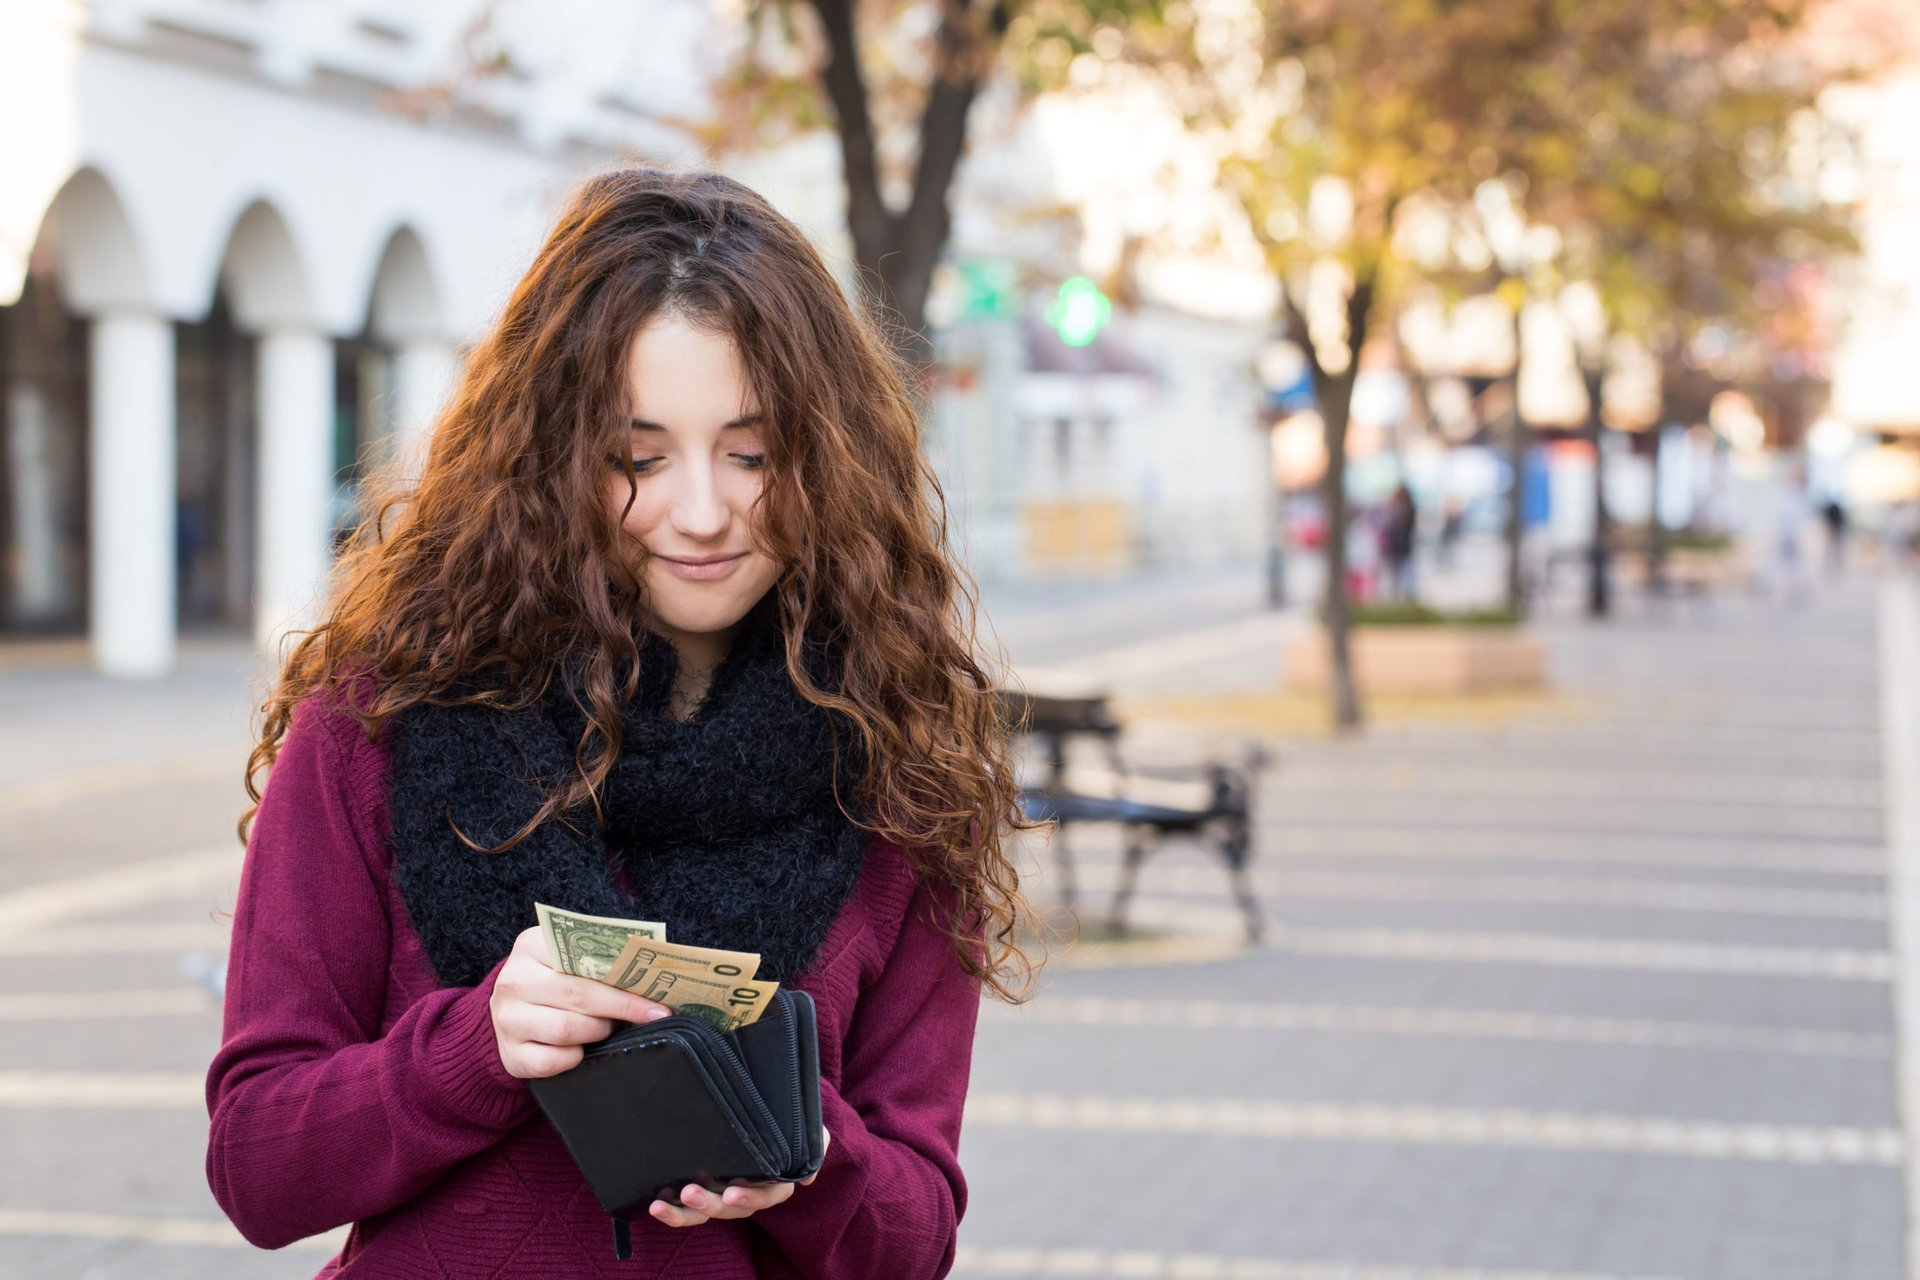 Young woman counts the cash in her wallet from her pay raise